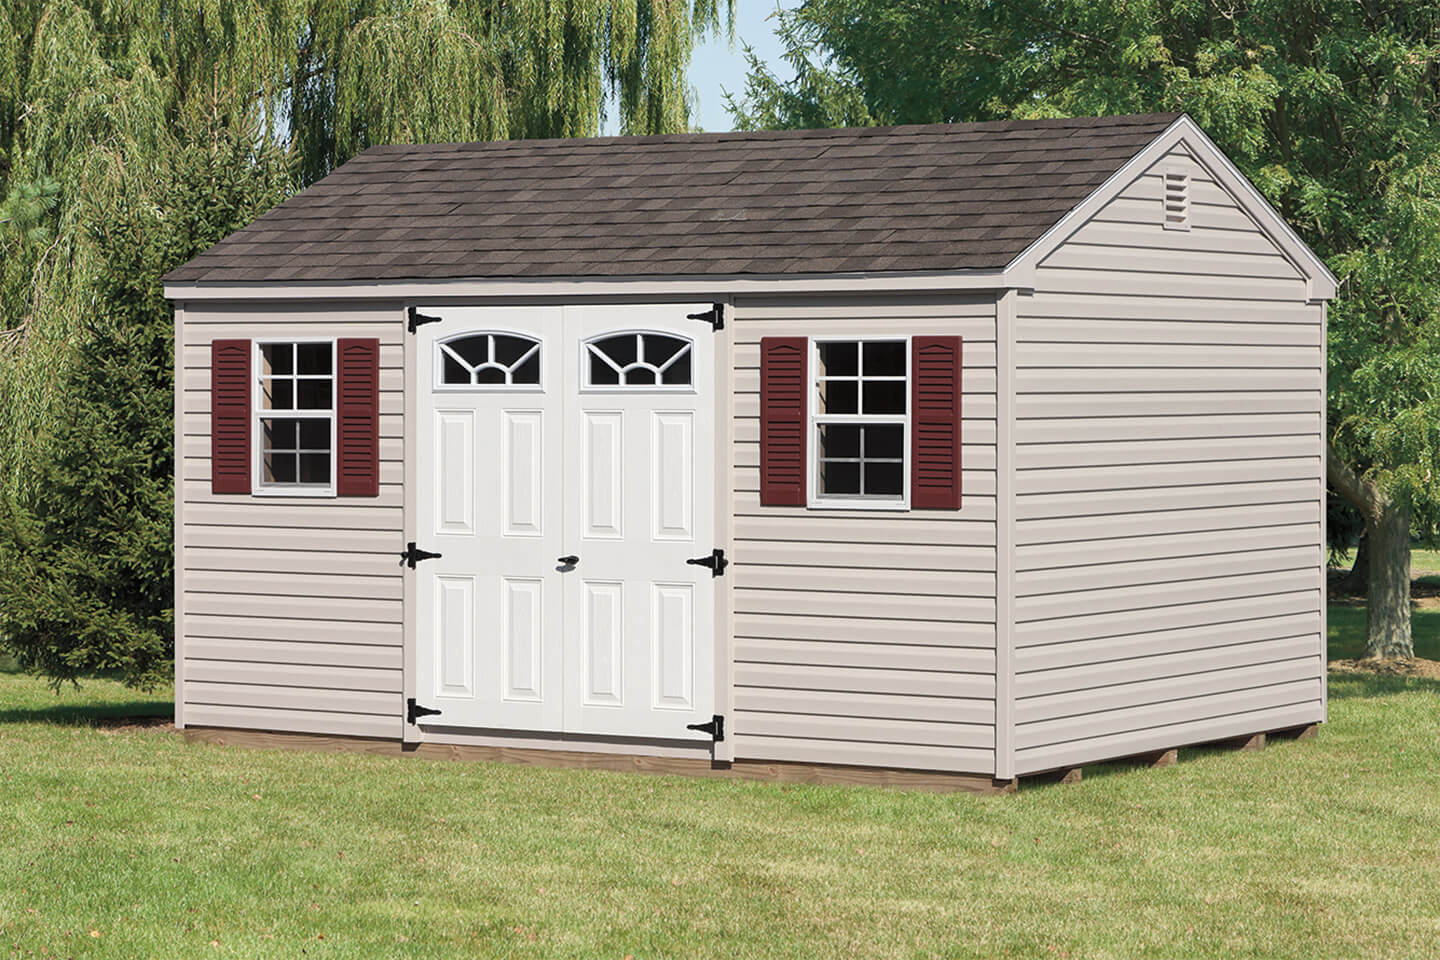 Vinyl a frame storage sheds cedar craft storage solutions for Vinyl storage sheds